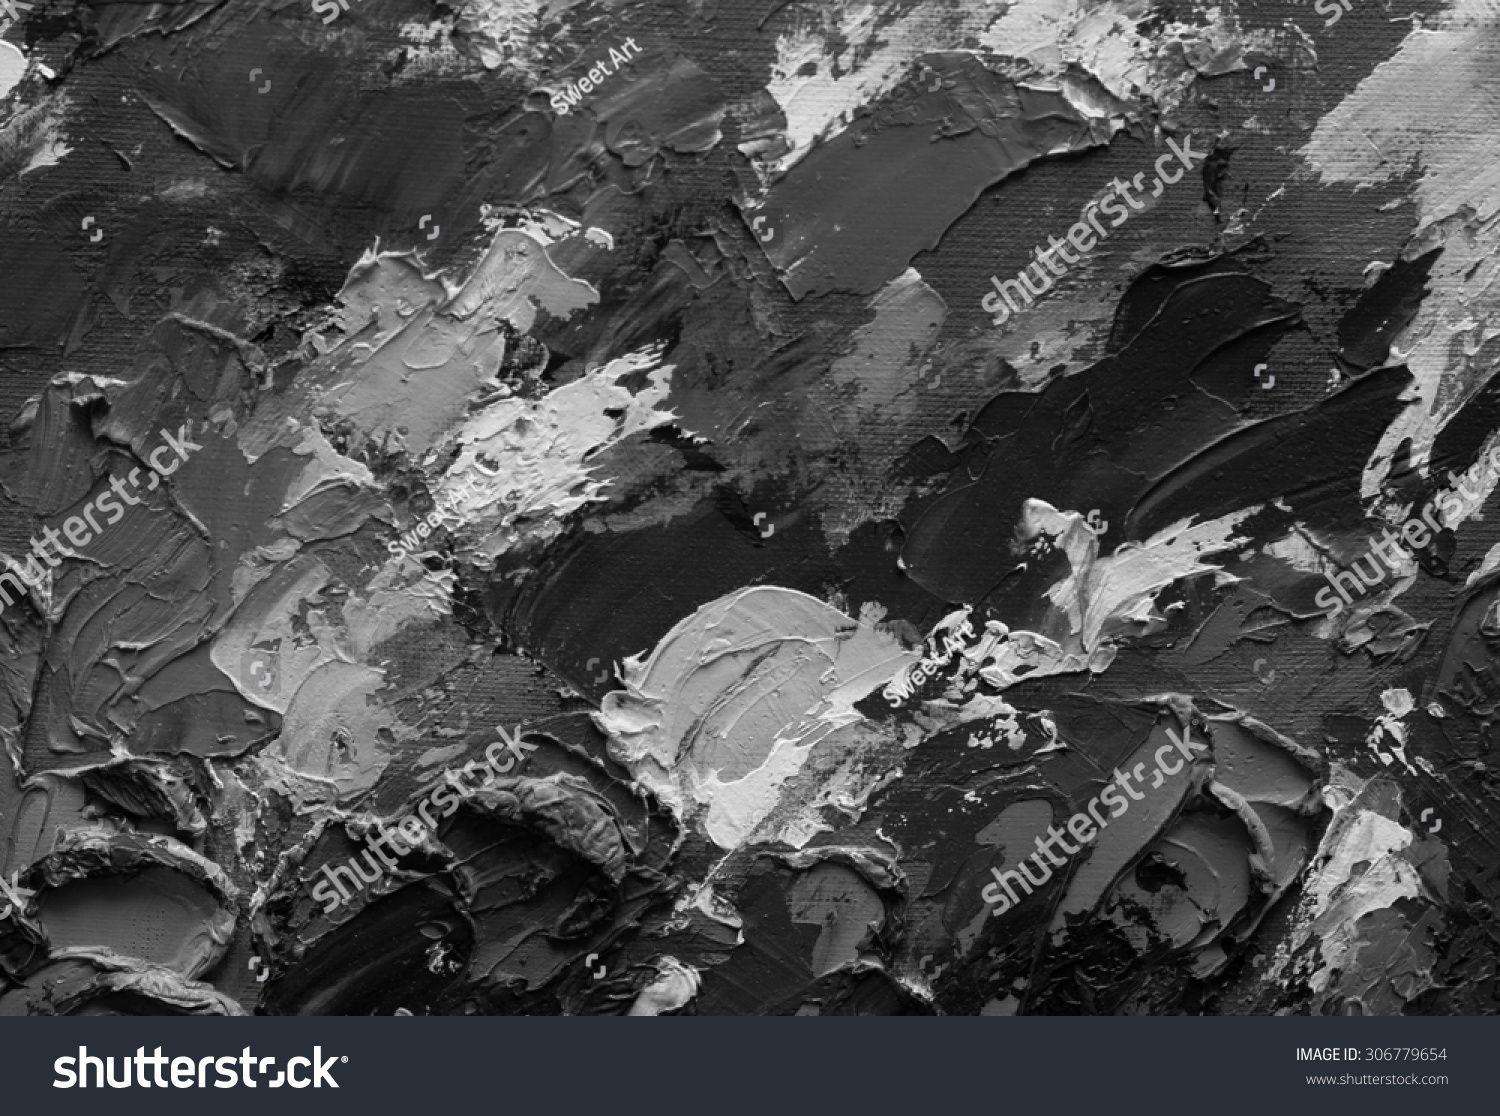 Oil paint texture grunge black and white background fragment of artwork abstract art background